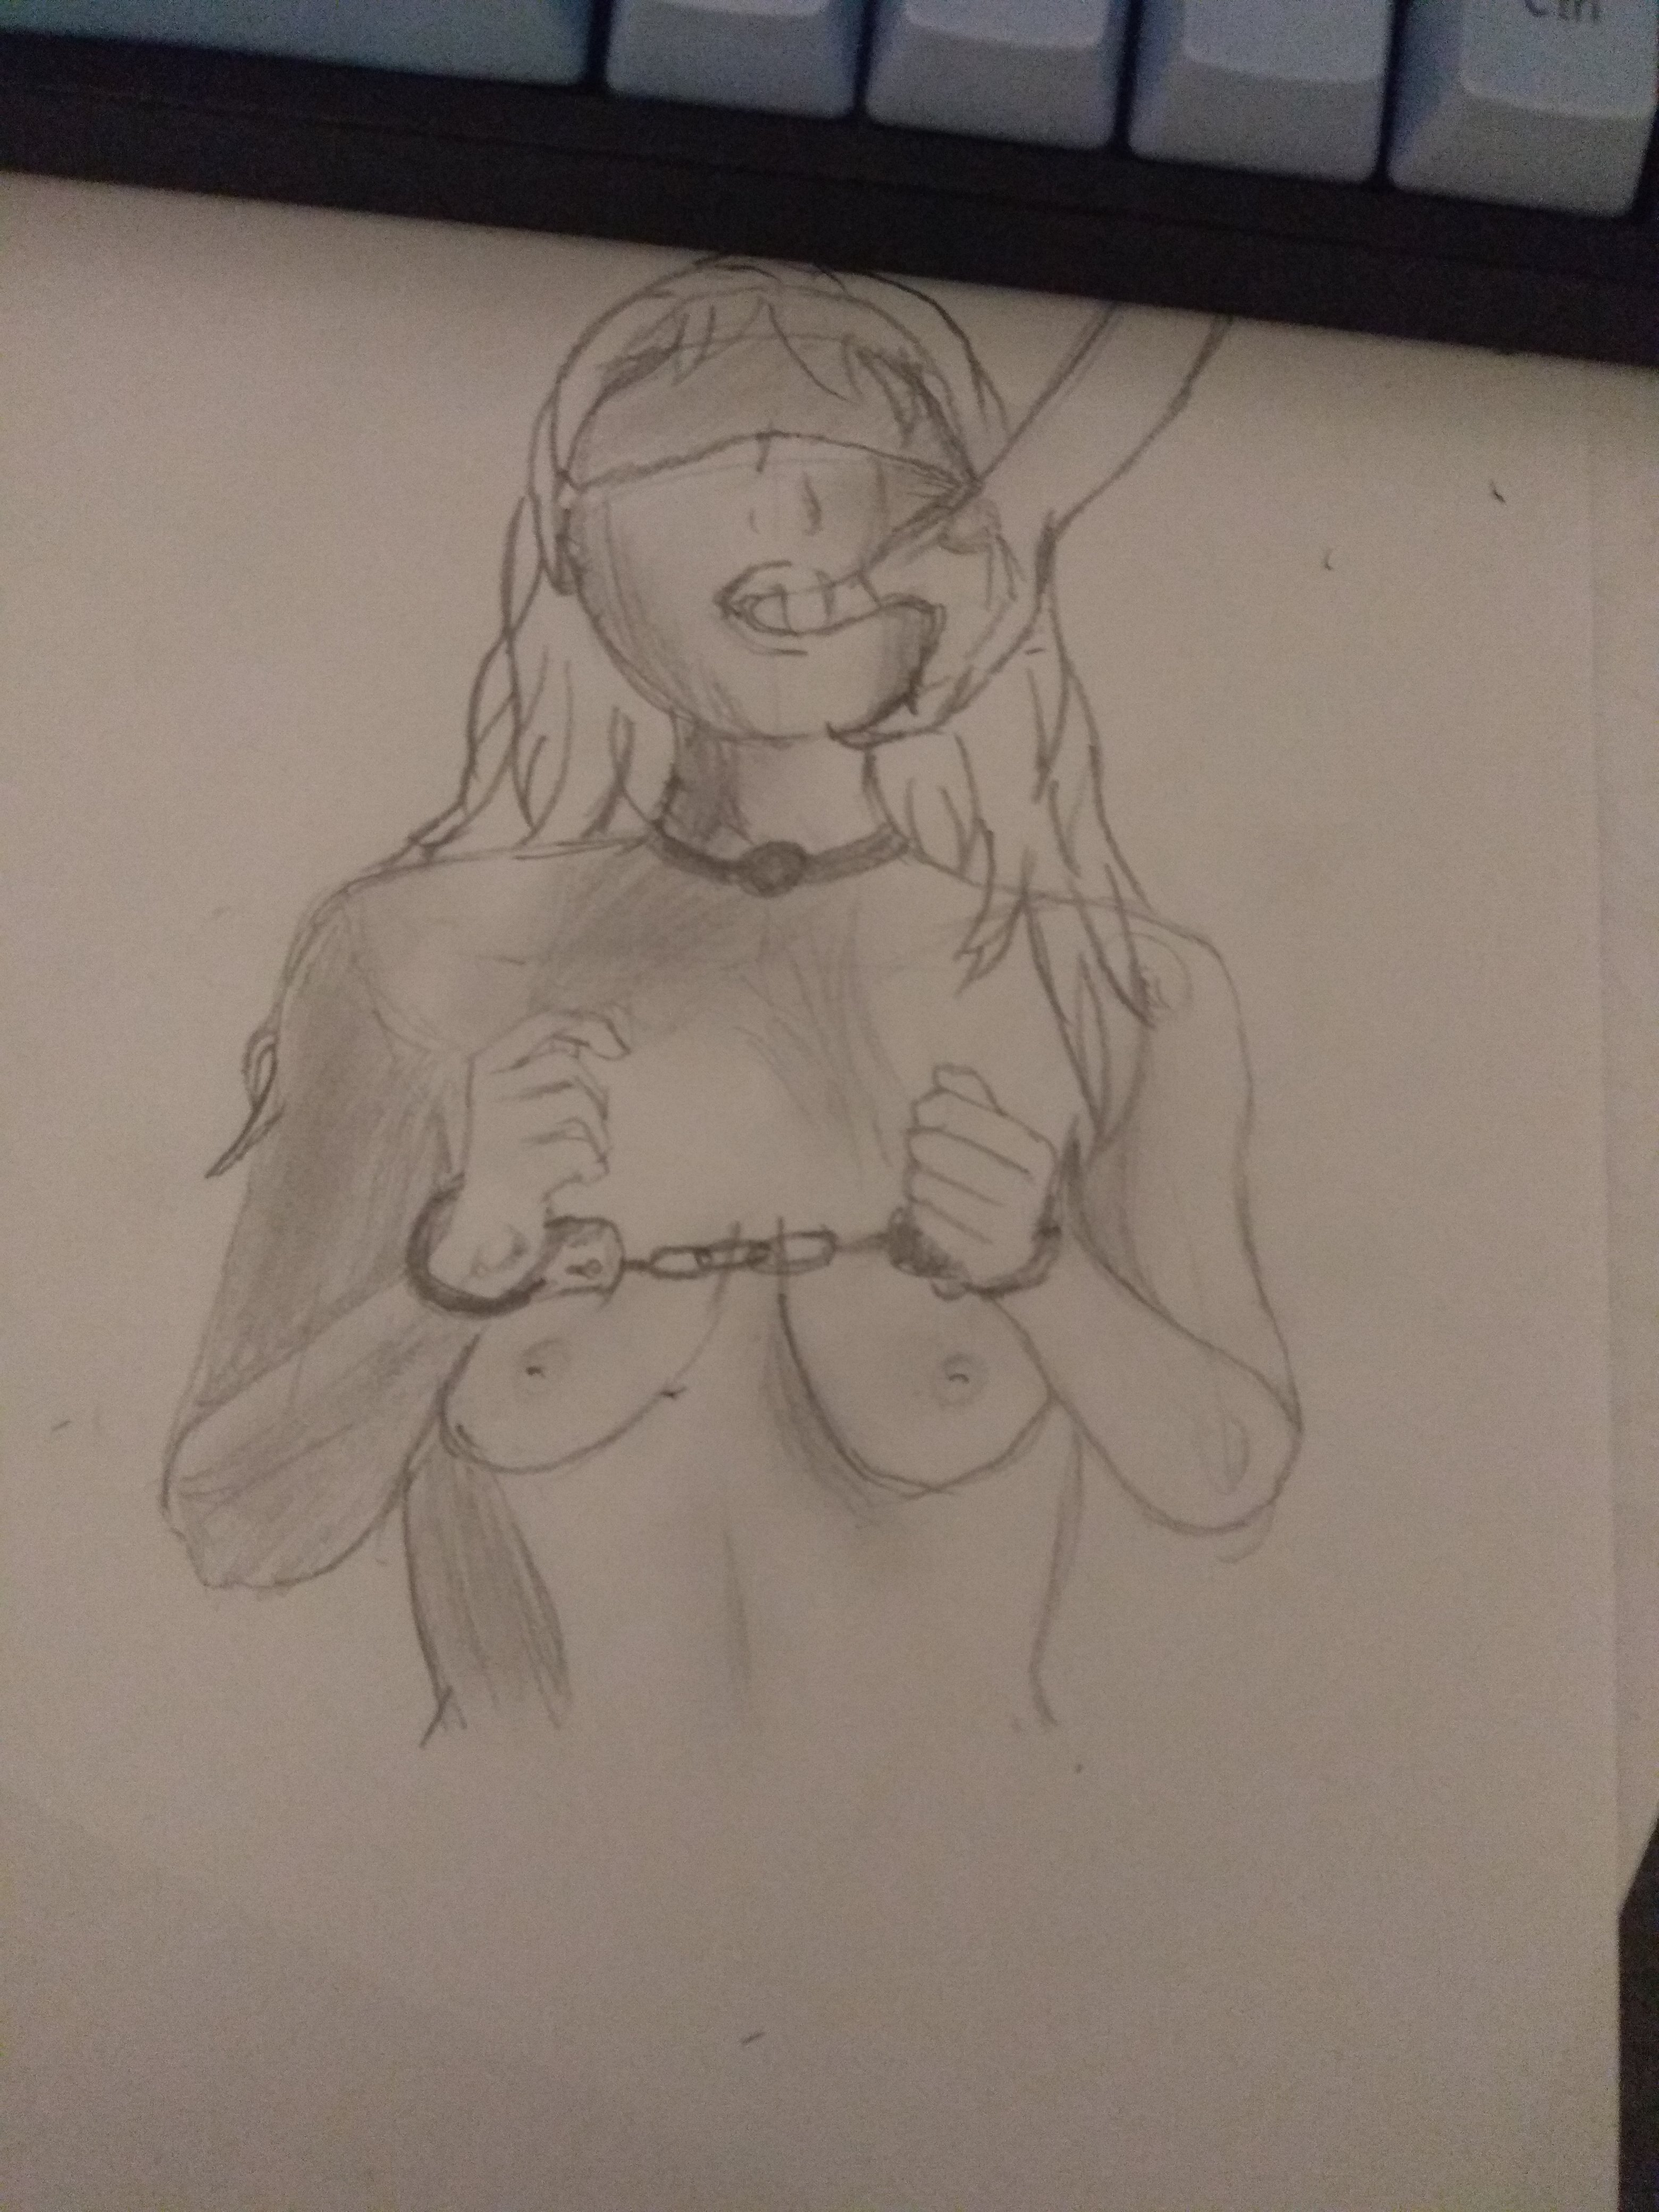 A first drawing, a few eye placement issues and the chest looks a bit off